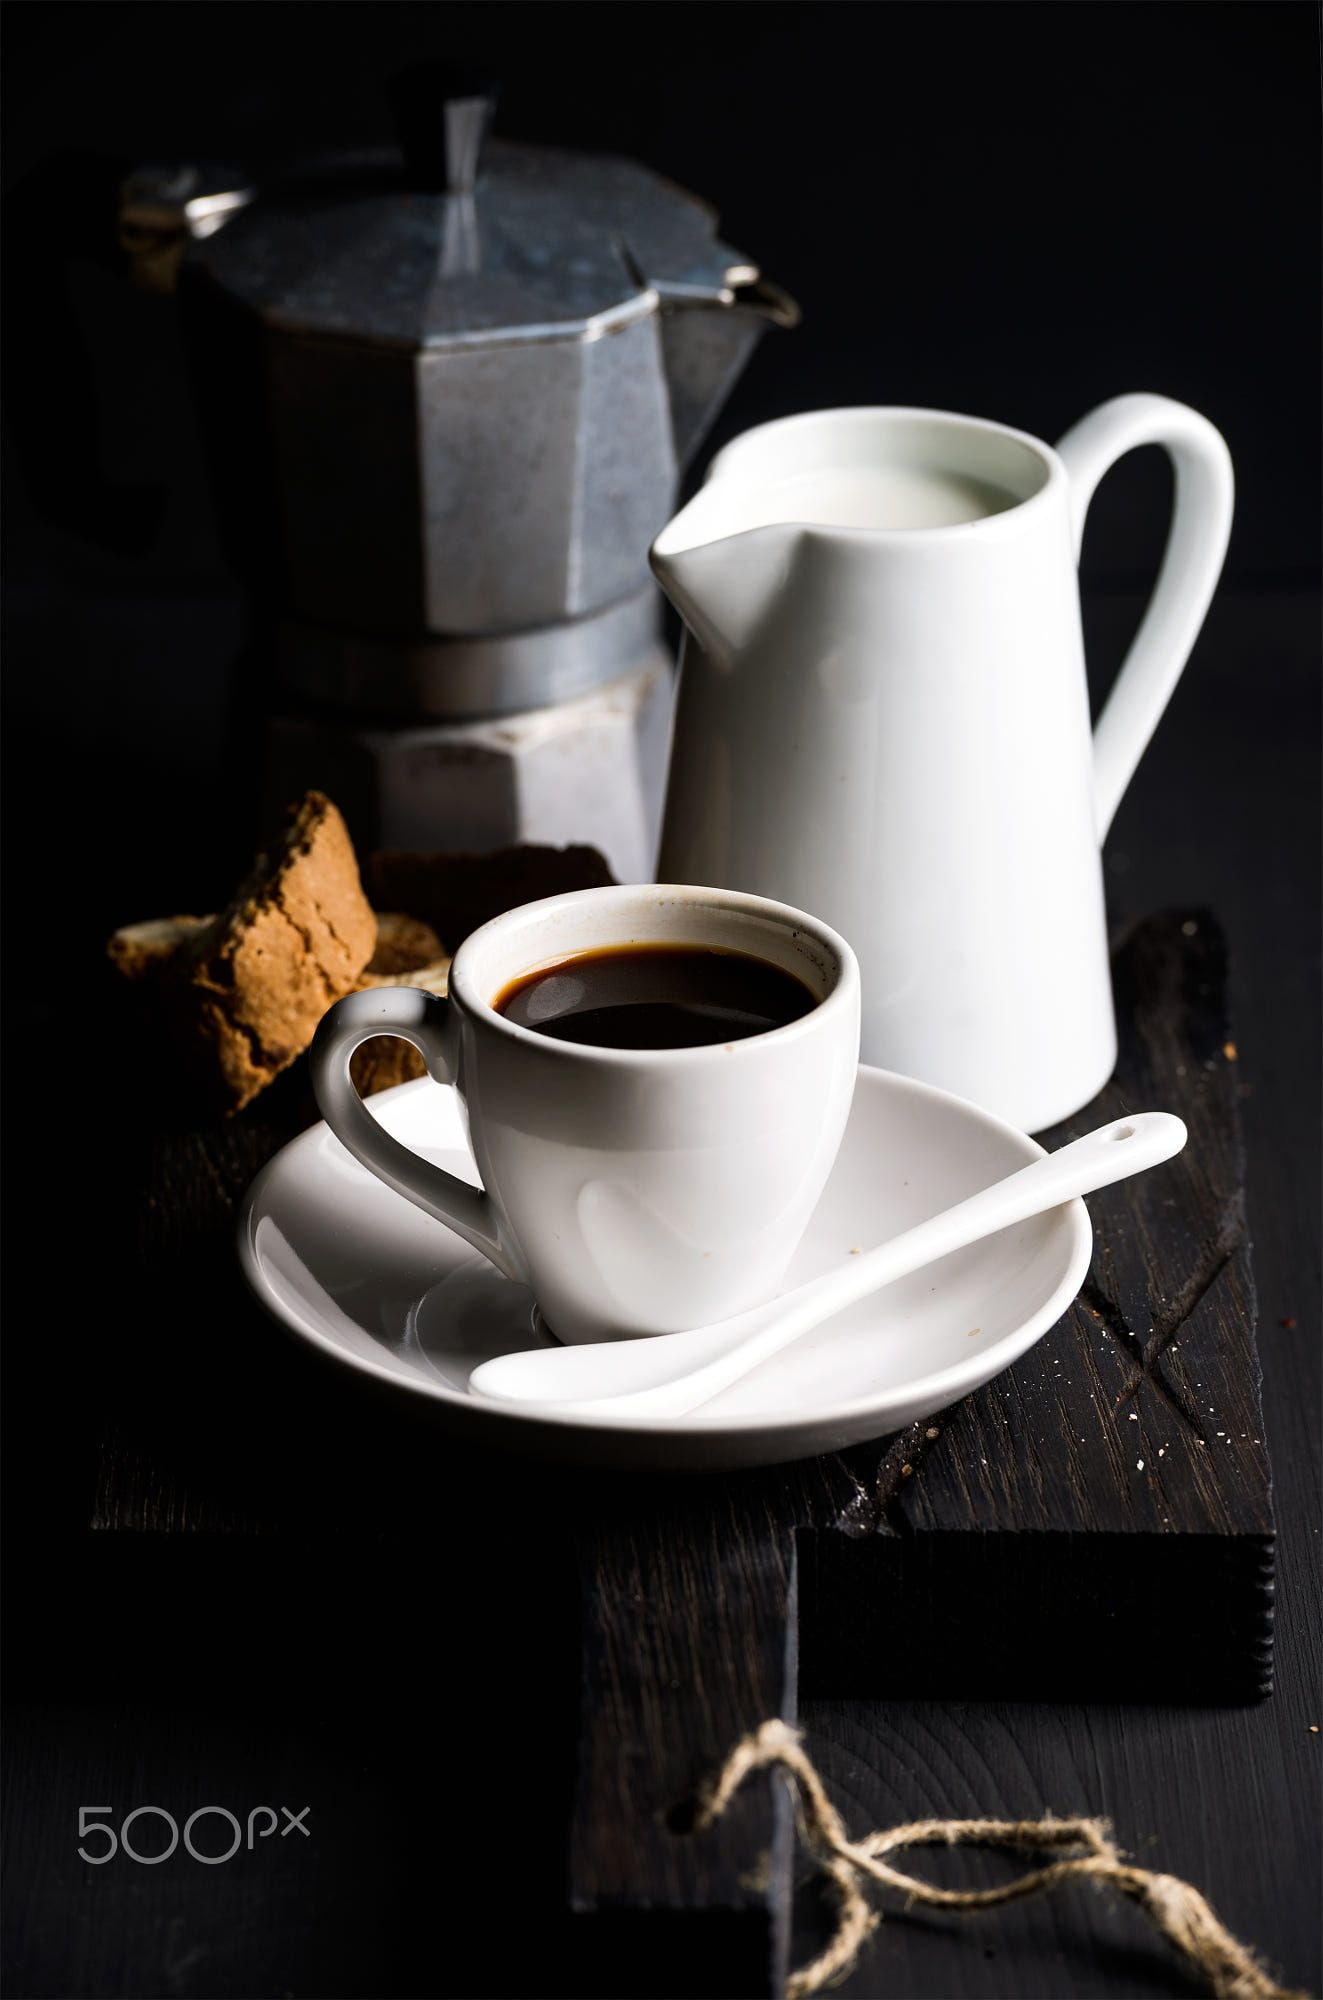 Italian coffee set. Cup of hot espresso, creamer with milk